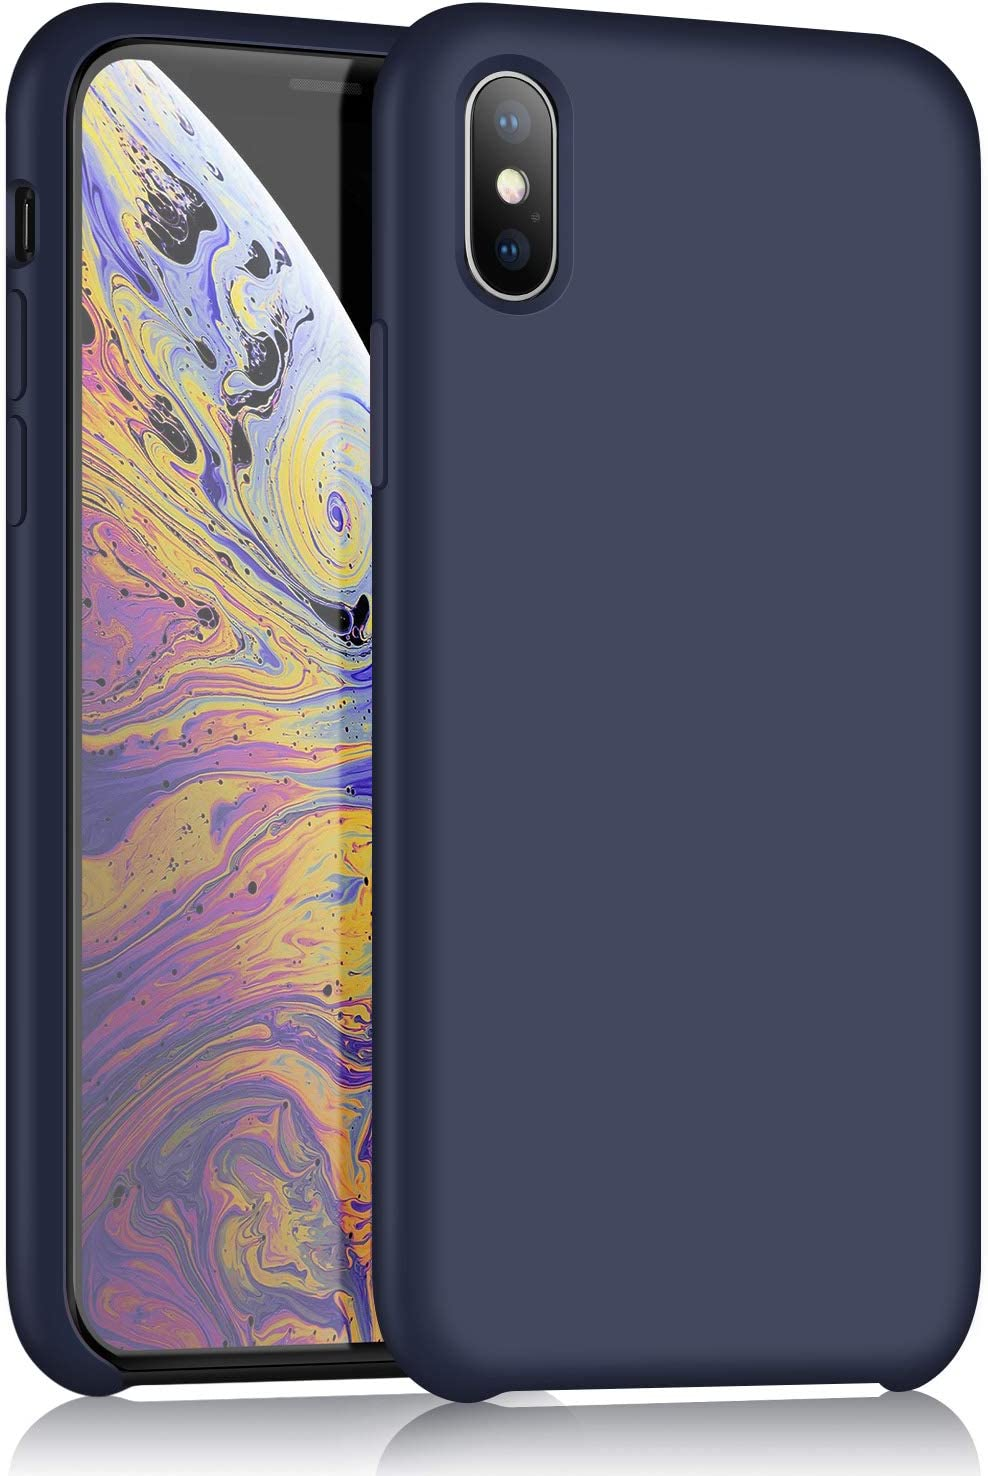 iPhone X Silicone Case, XSHNUO Liquid Silicone Gel Rubber Ultra Thin Case with Soft Microfiber Cloth Lining Cushion for iPhone X (2017) 5.8 inch (Midnight Blue)